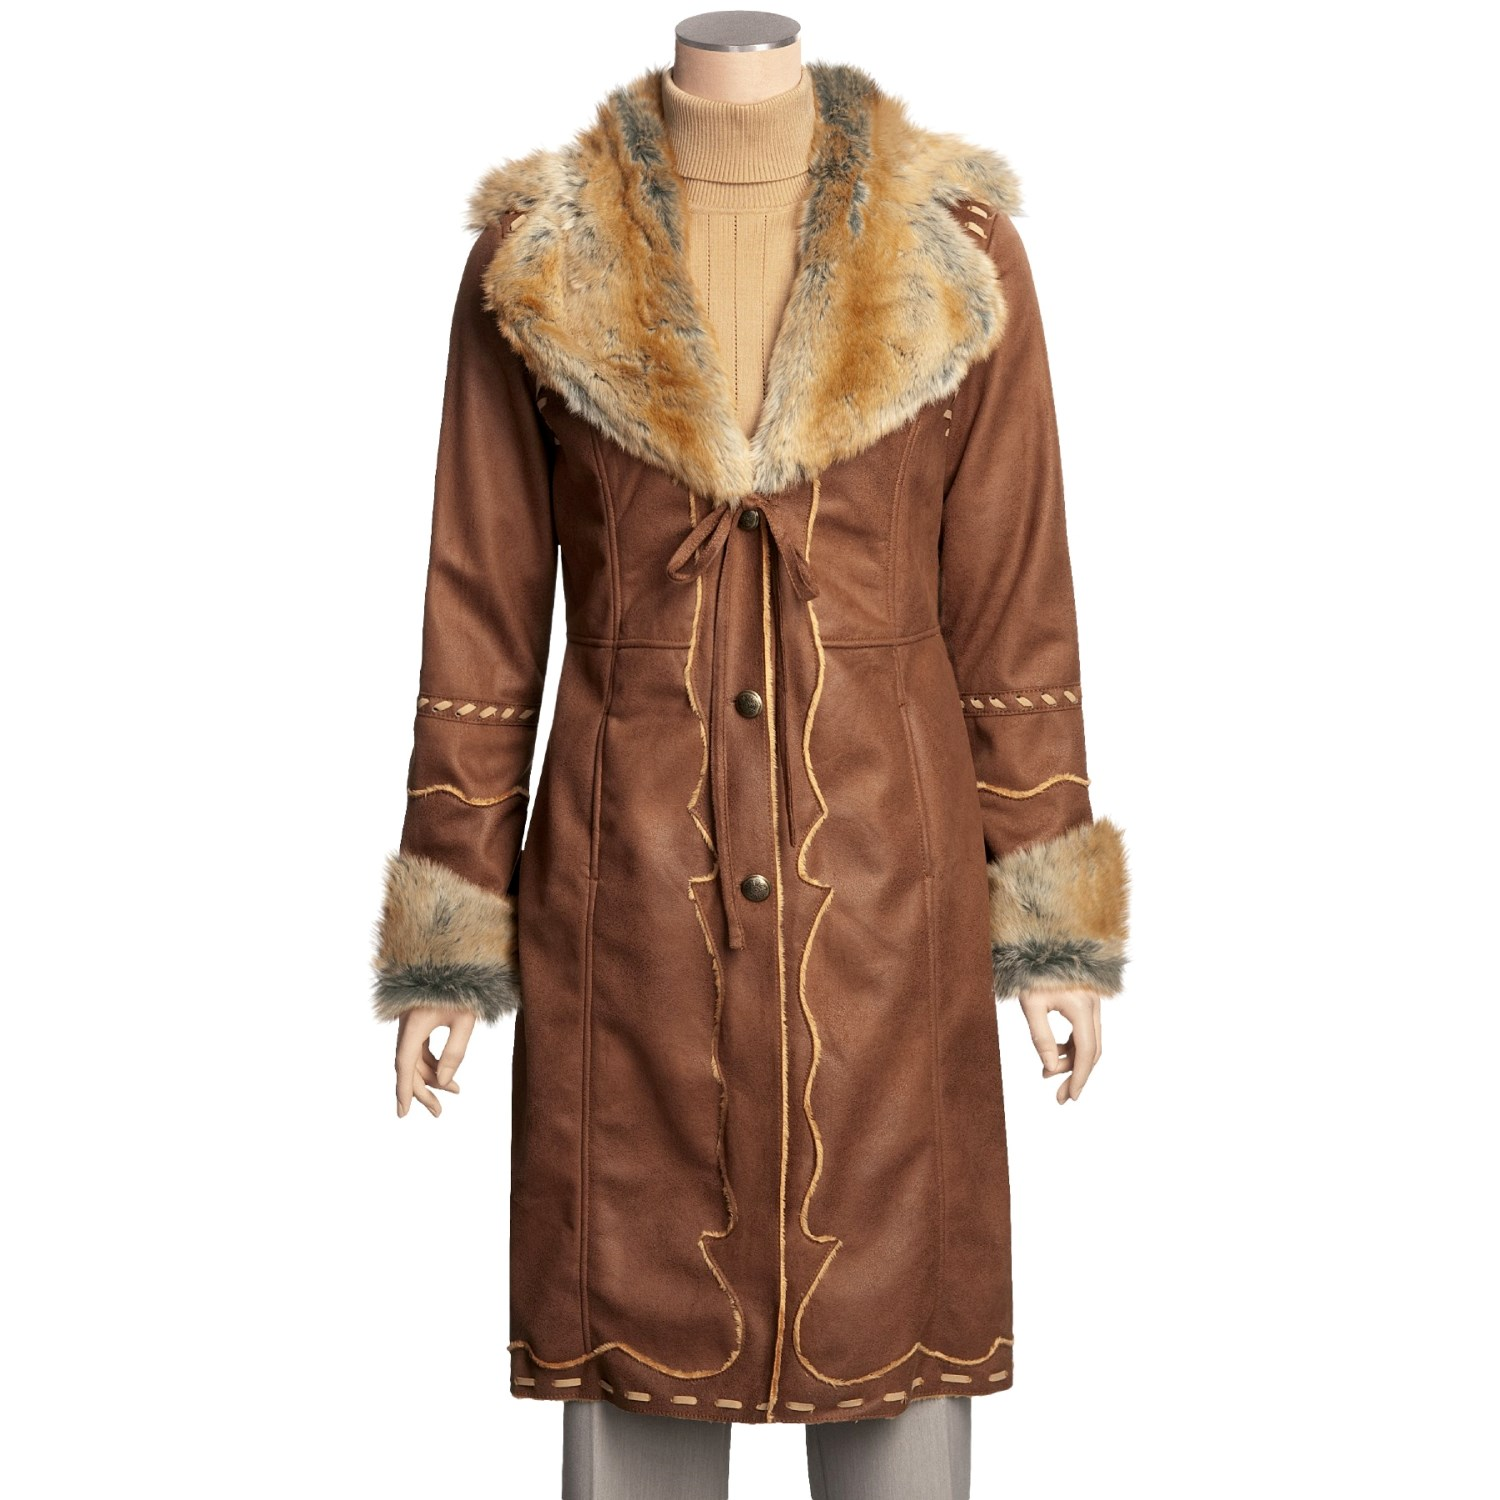 MontanaCo Faux-Shearling Coat - Full Length (For Women). Click to expand